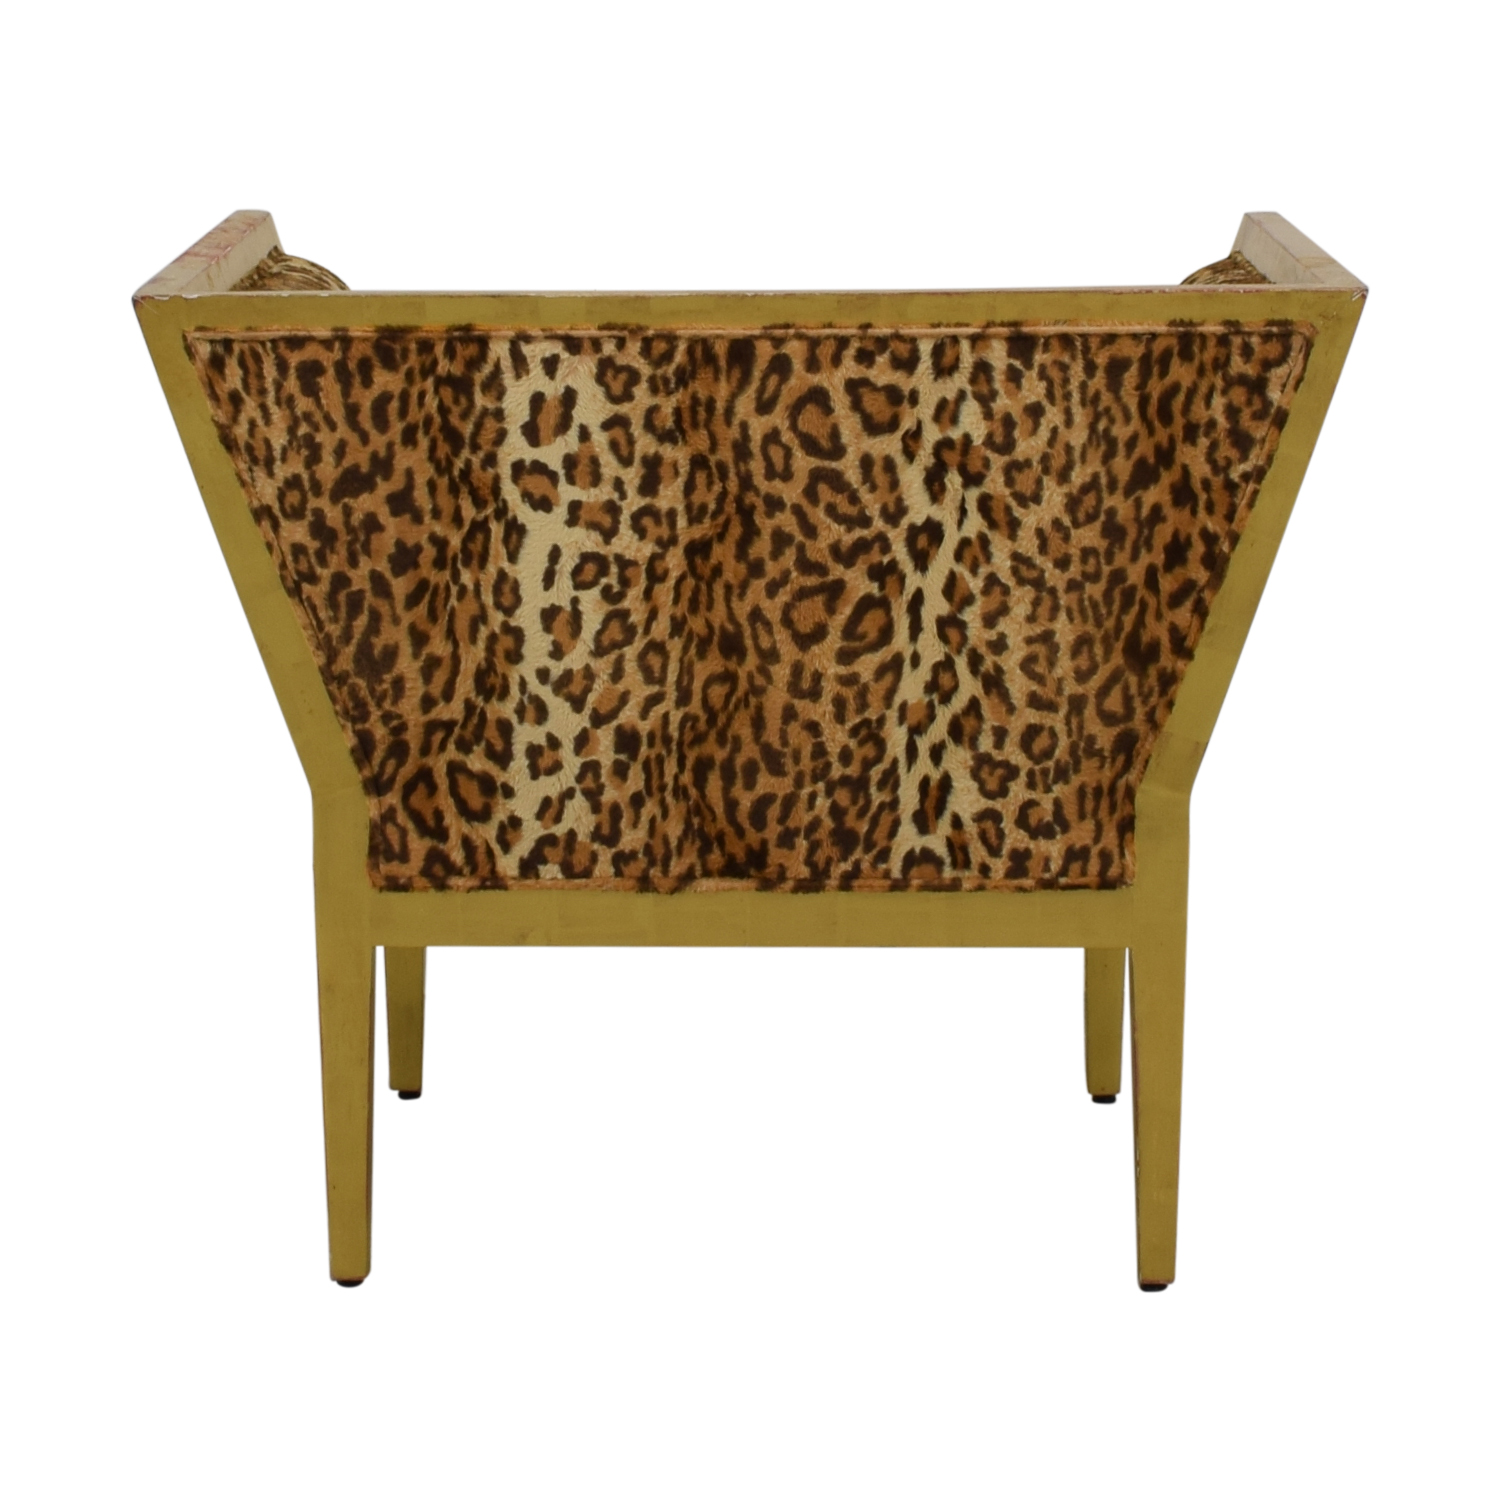 Furniture Masters Furniture Masters Leopard Distressed Accent Chair